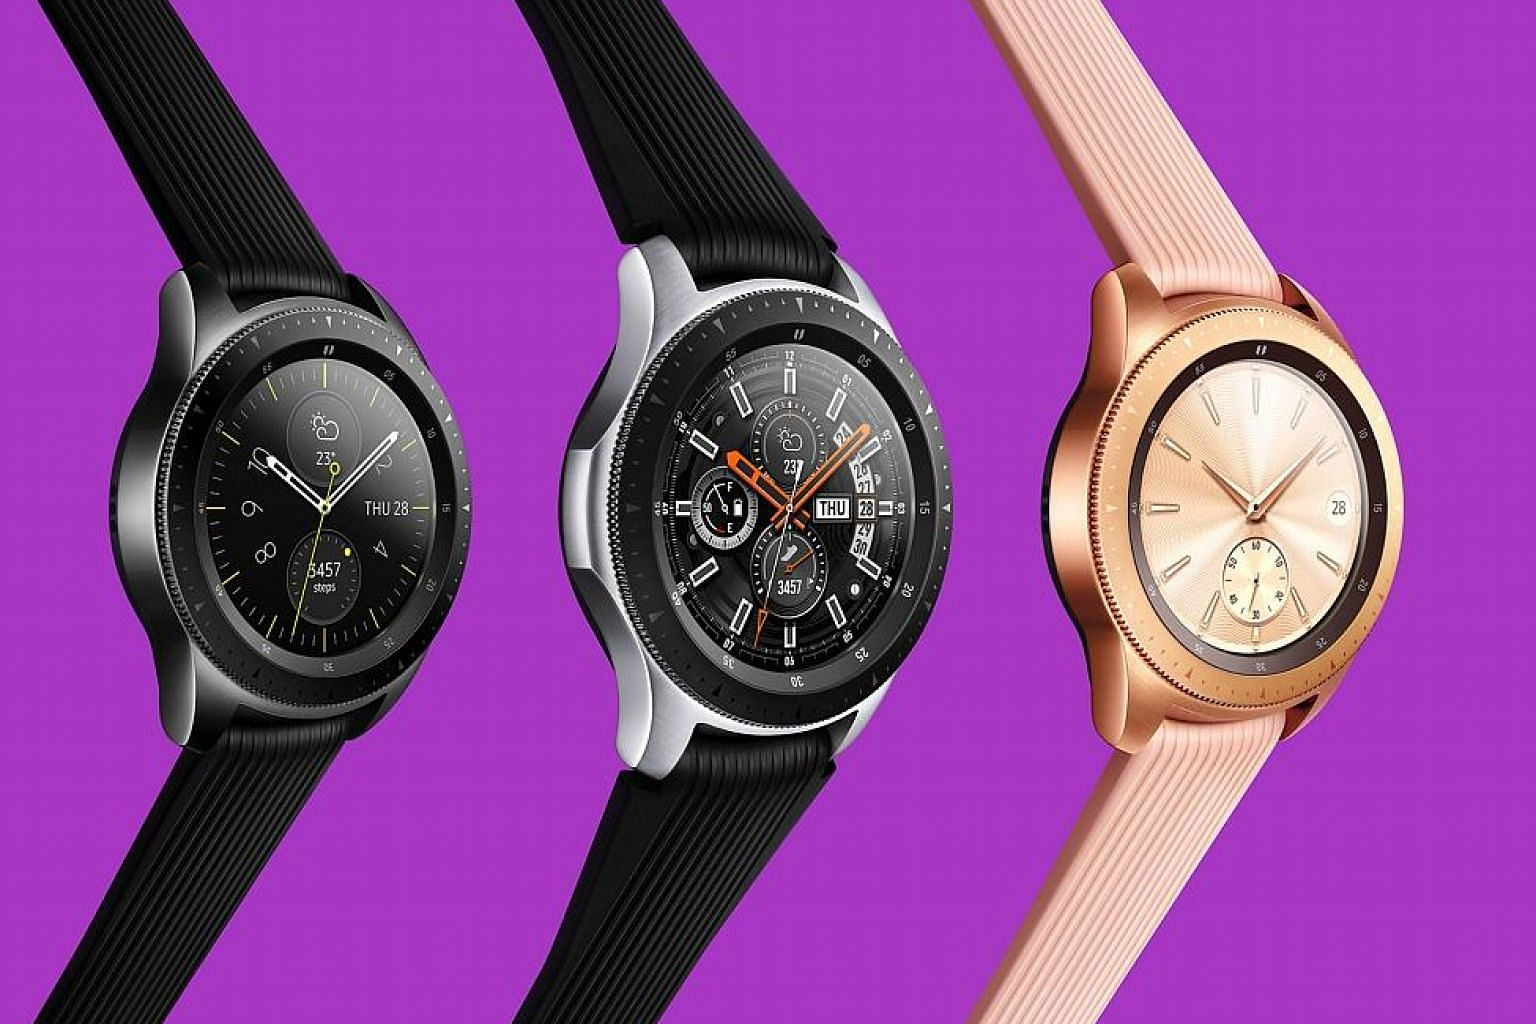 The Galaxy Watch, which is water-resistant to 50m, comes in two sizes - the rose gold or black 42mm models and a silver 46mm model.